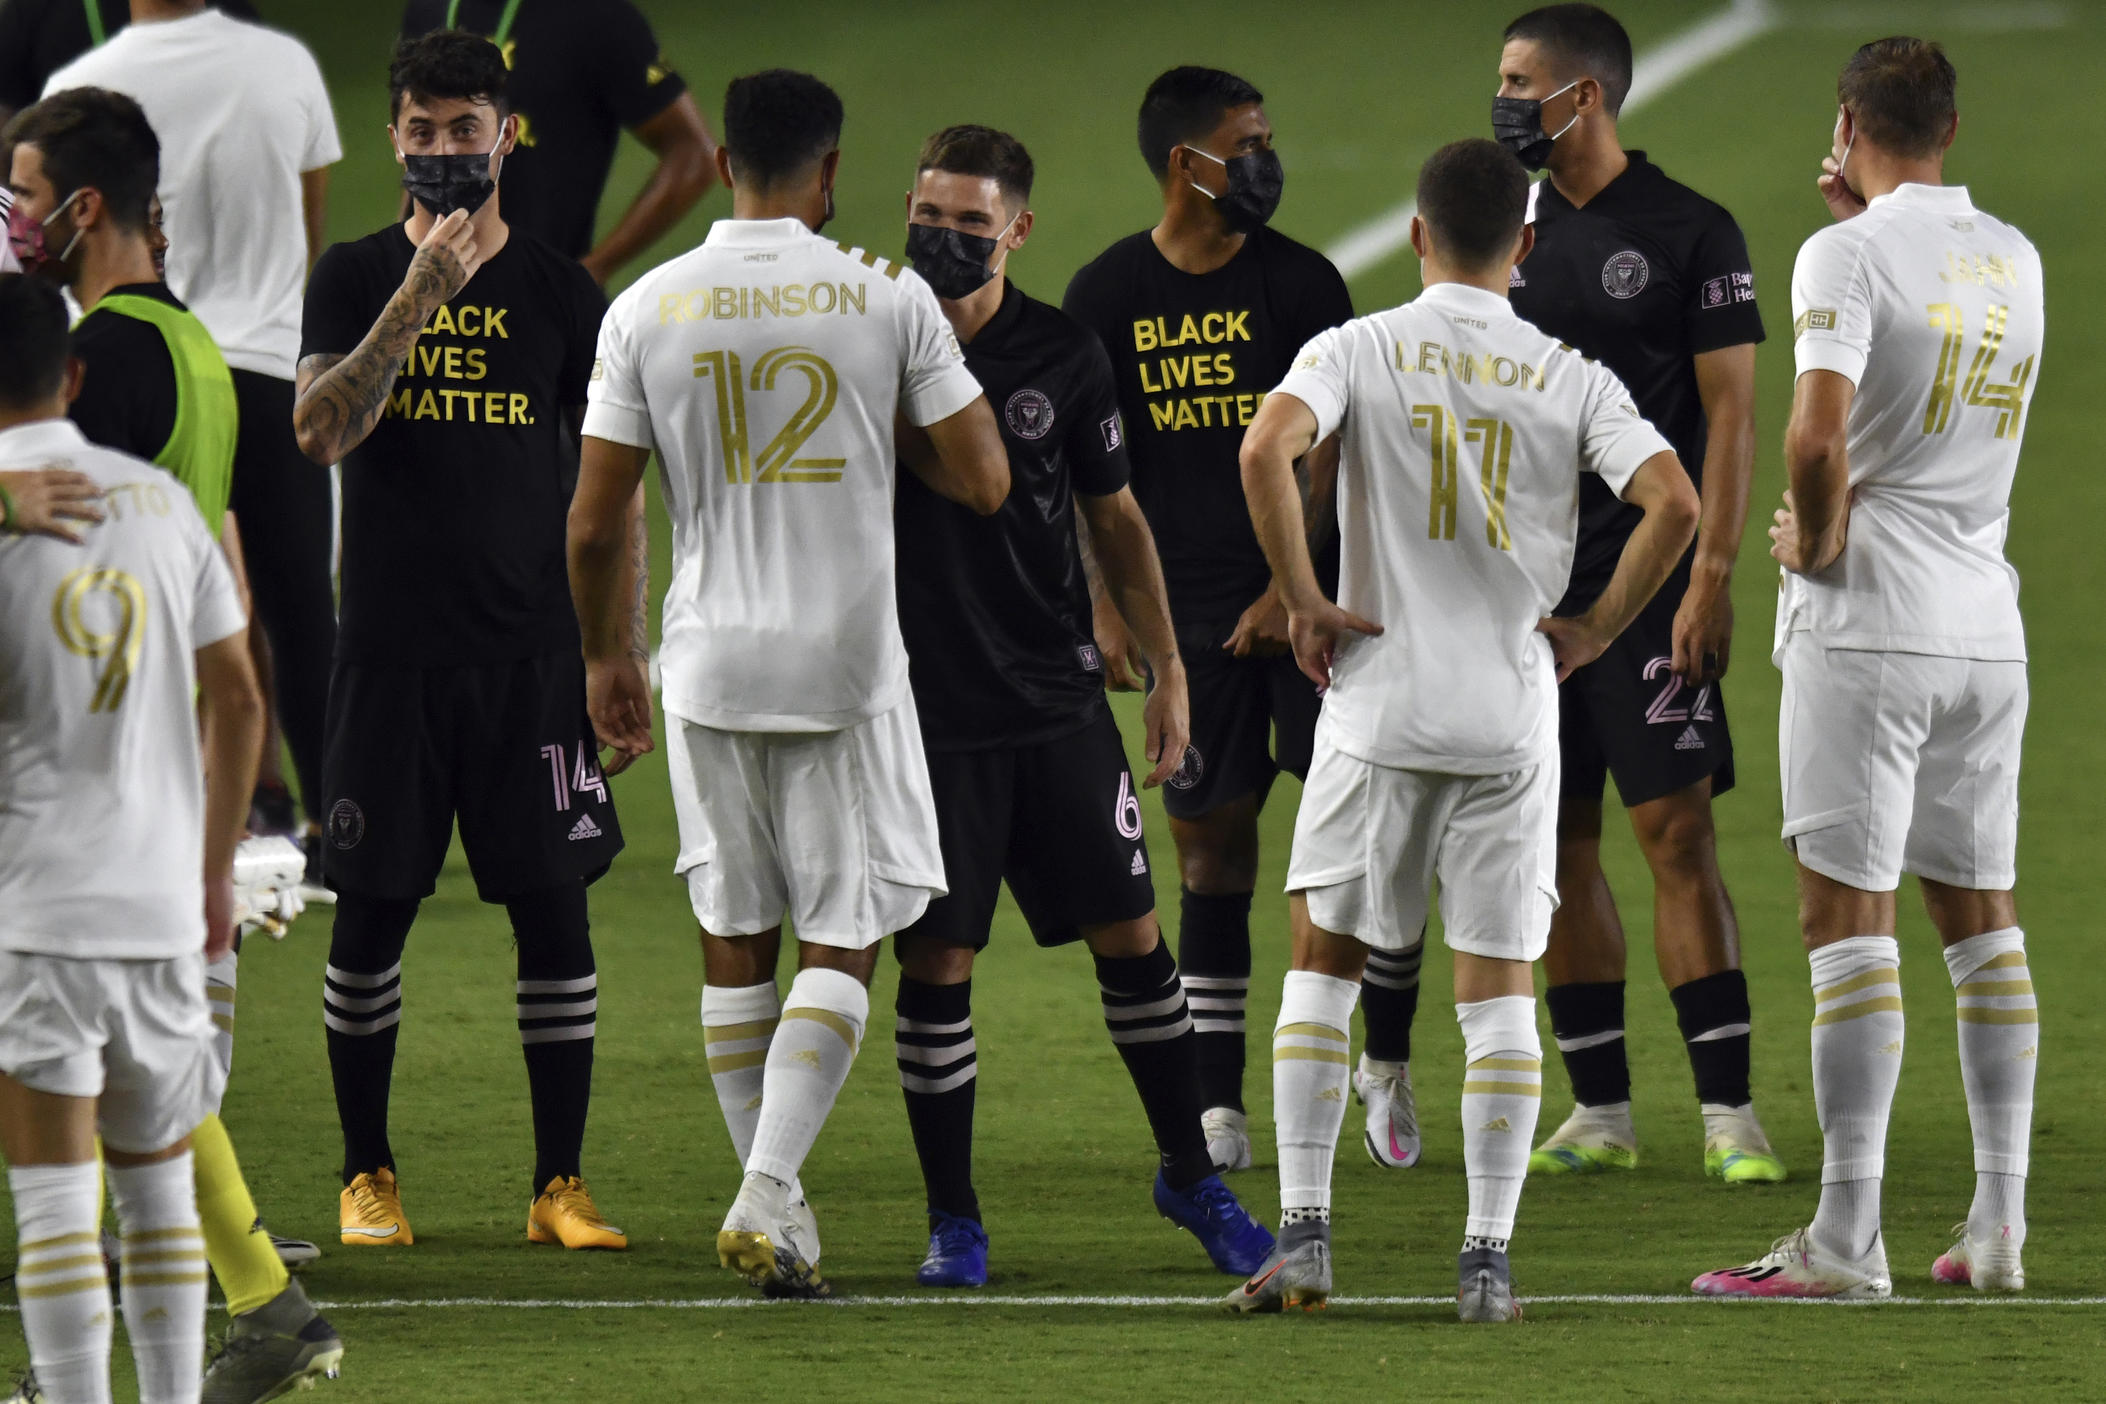 Players from Inter Miami and Atlanta United gather on the field before the postponement of their MLS soccer match Wednesday, Aug. 26, 2020, in Fort Lauderdale, Fla.